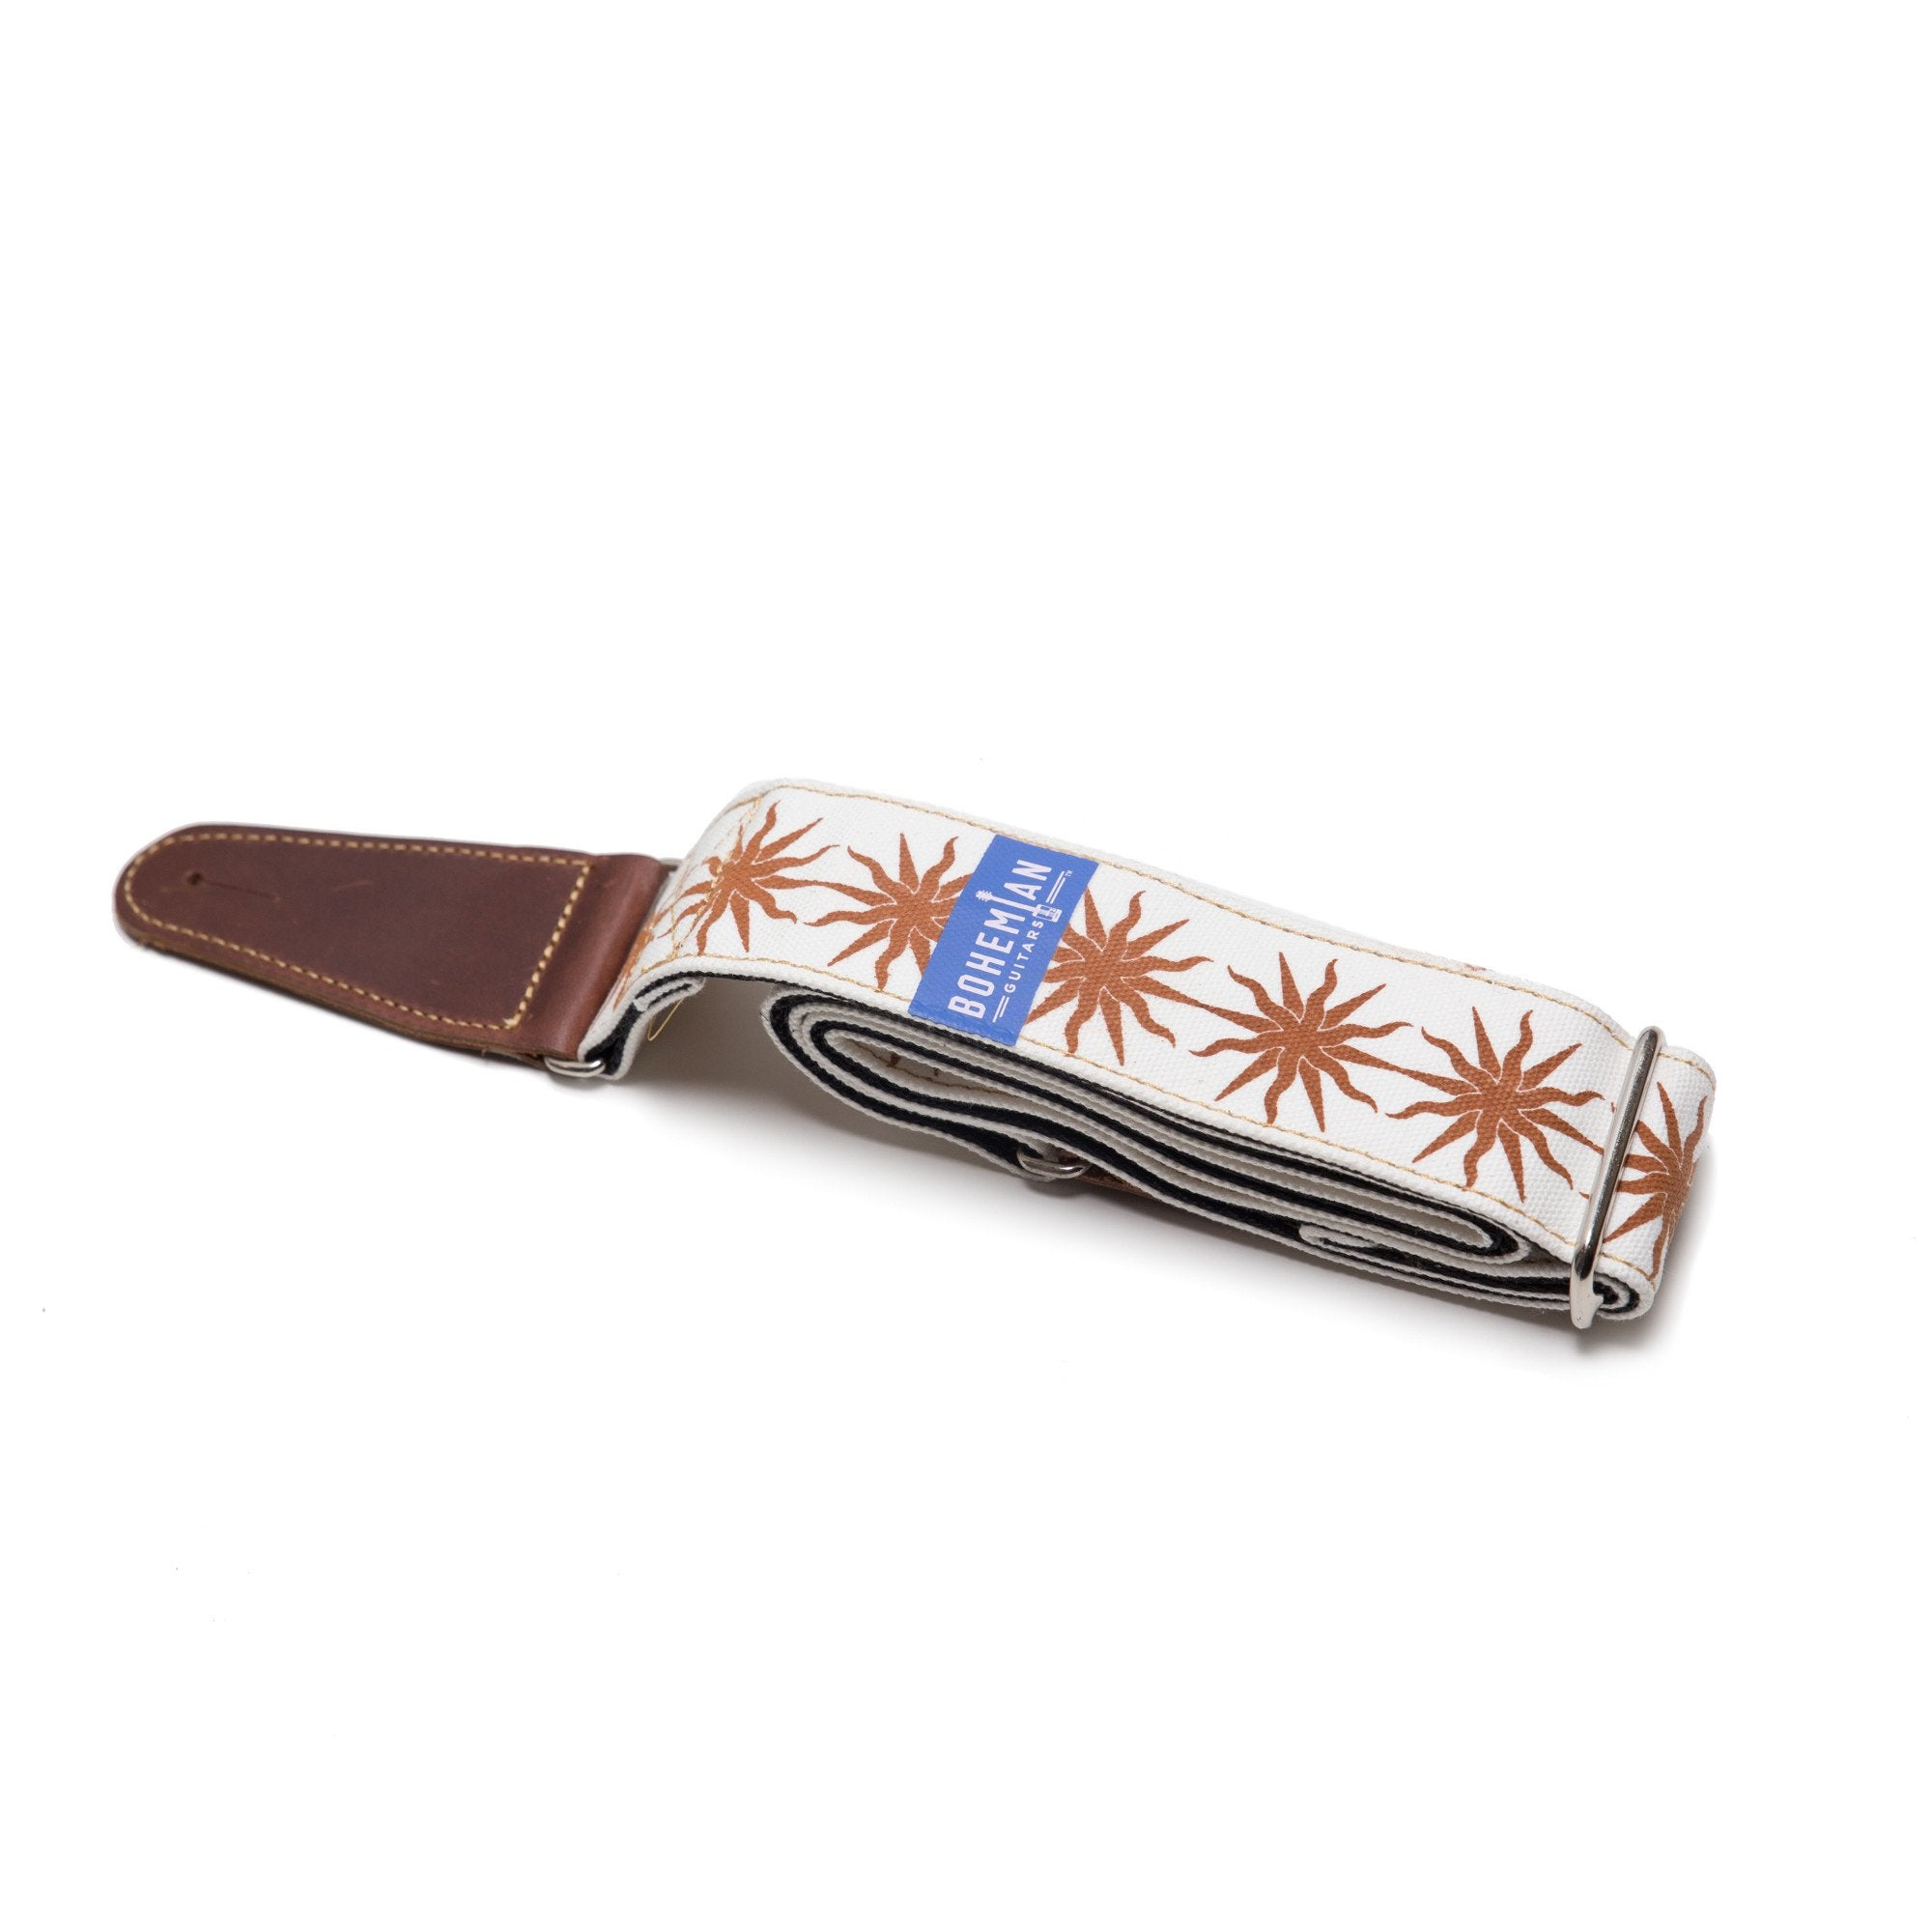 Accessory - Bohemian Guitars Seatbelt Guitar Strap - Stars